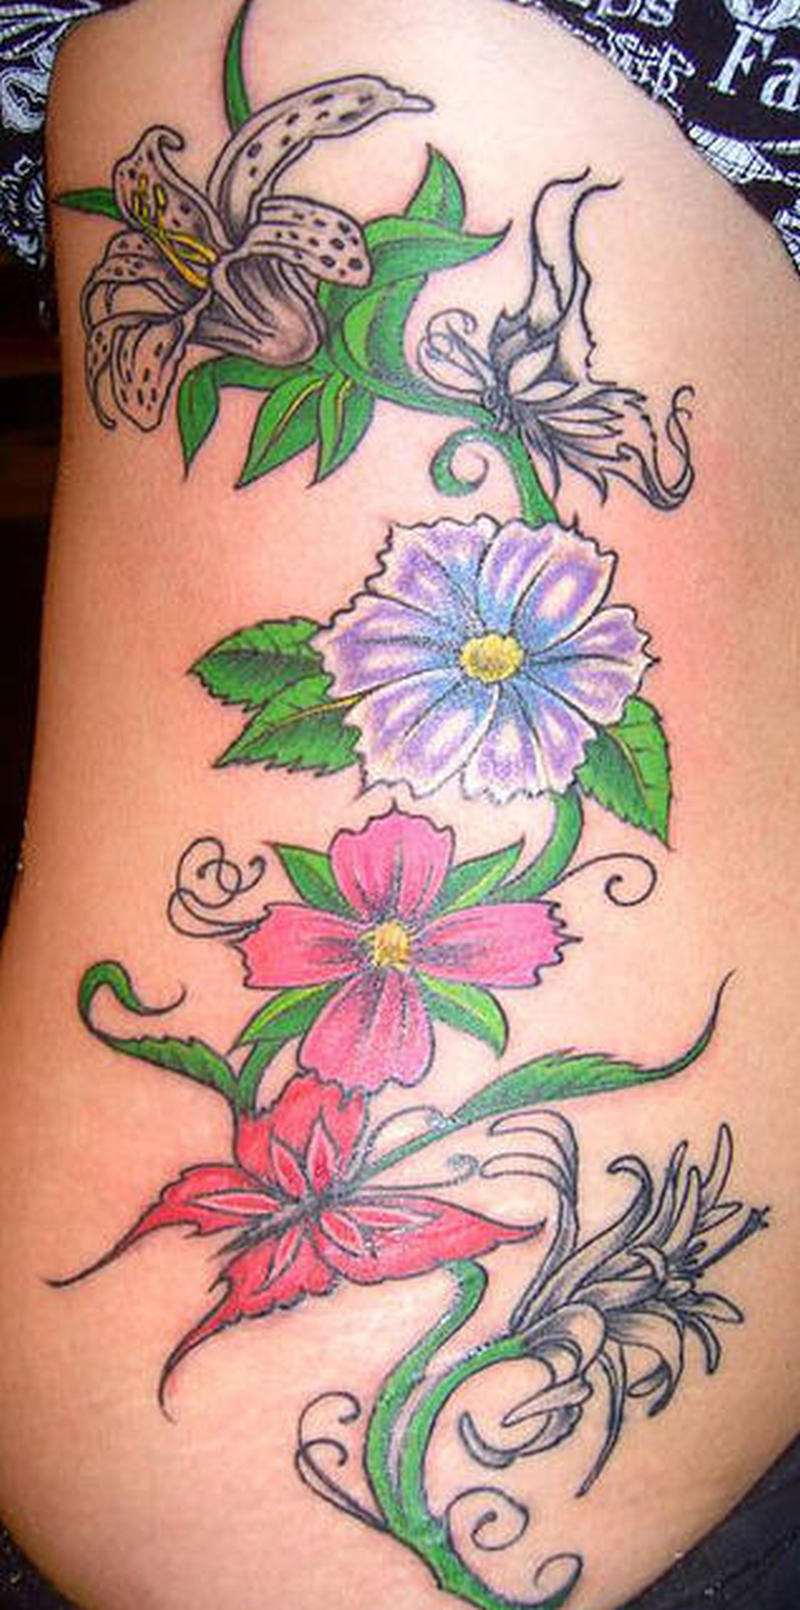 colorful flowers n butterfly tattoo design tattoos book tattoos designs. Black Bedroom Furniture Sets. Home Design Ideas